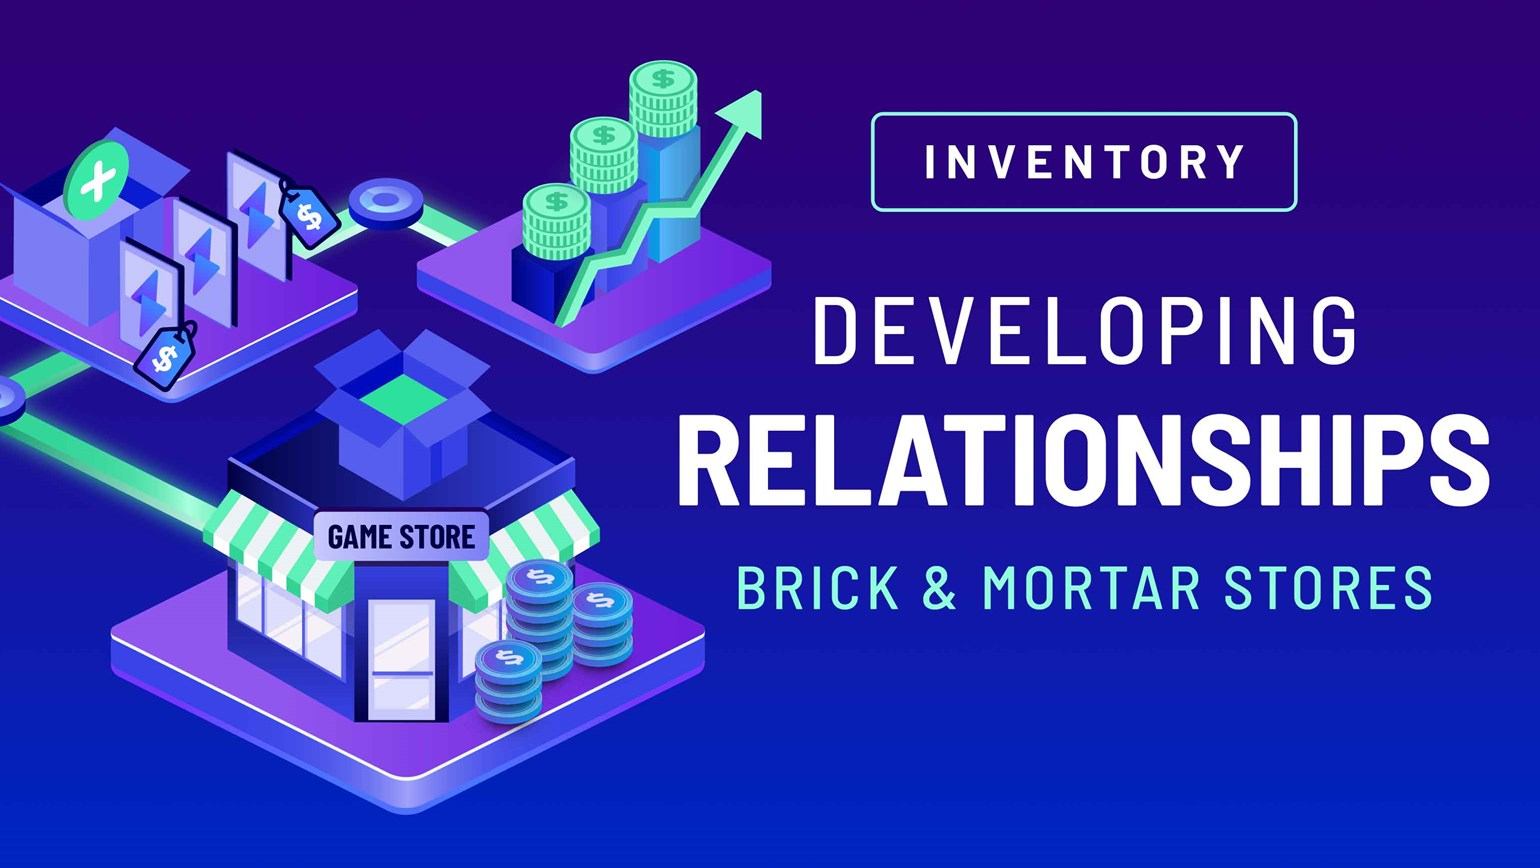 Developing Relationships with Brick and Mortar Stores